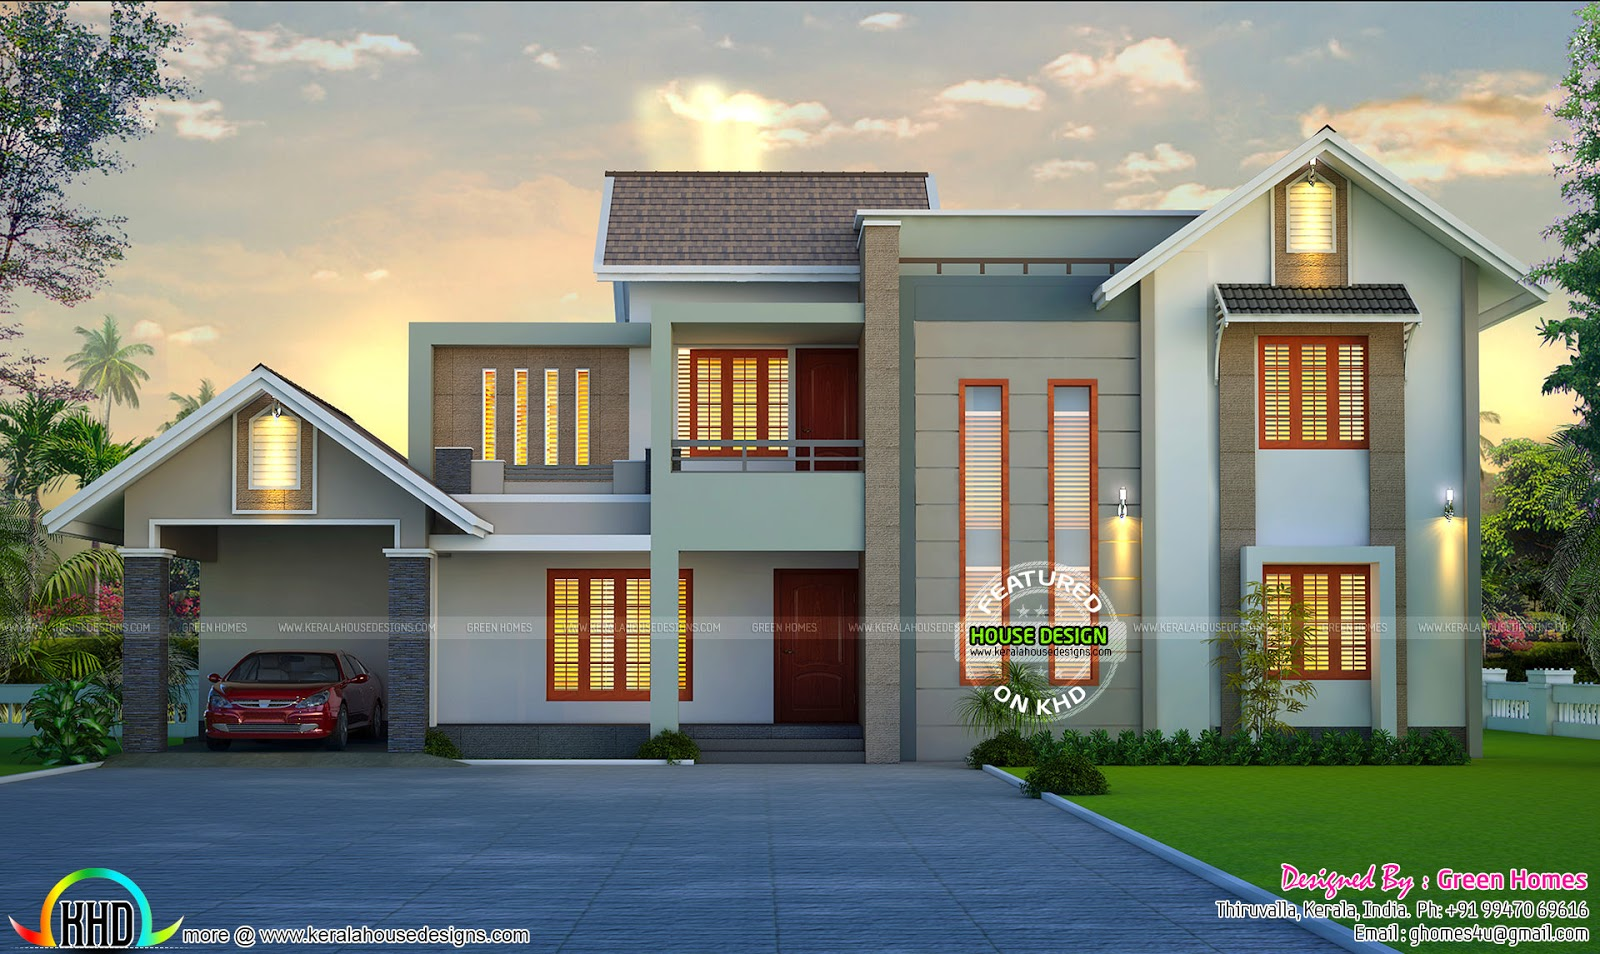 Beautiful home design by green homes thiruvalla kerala for Beautiful kerala home design